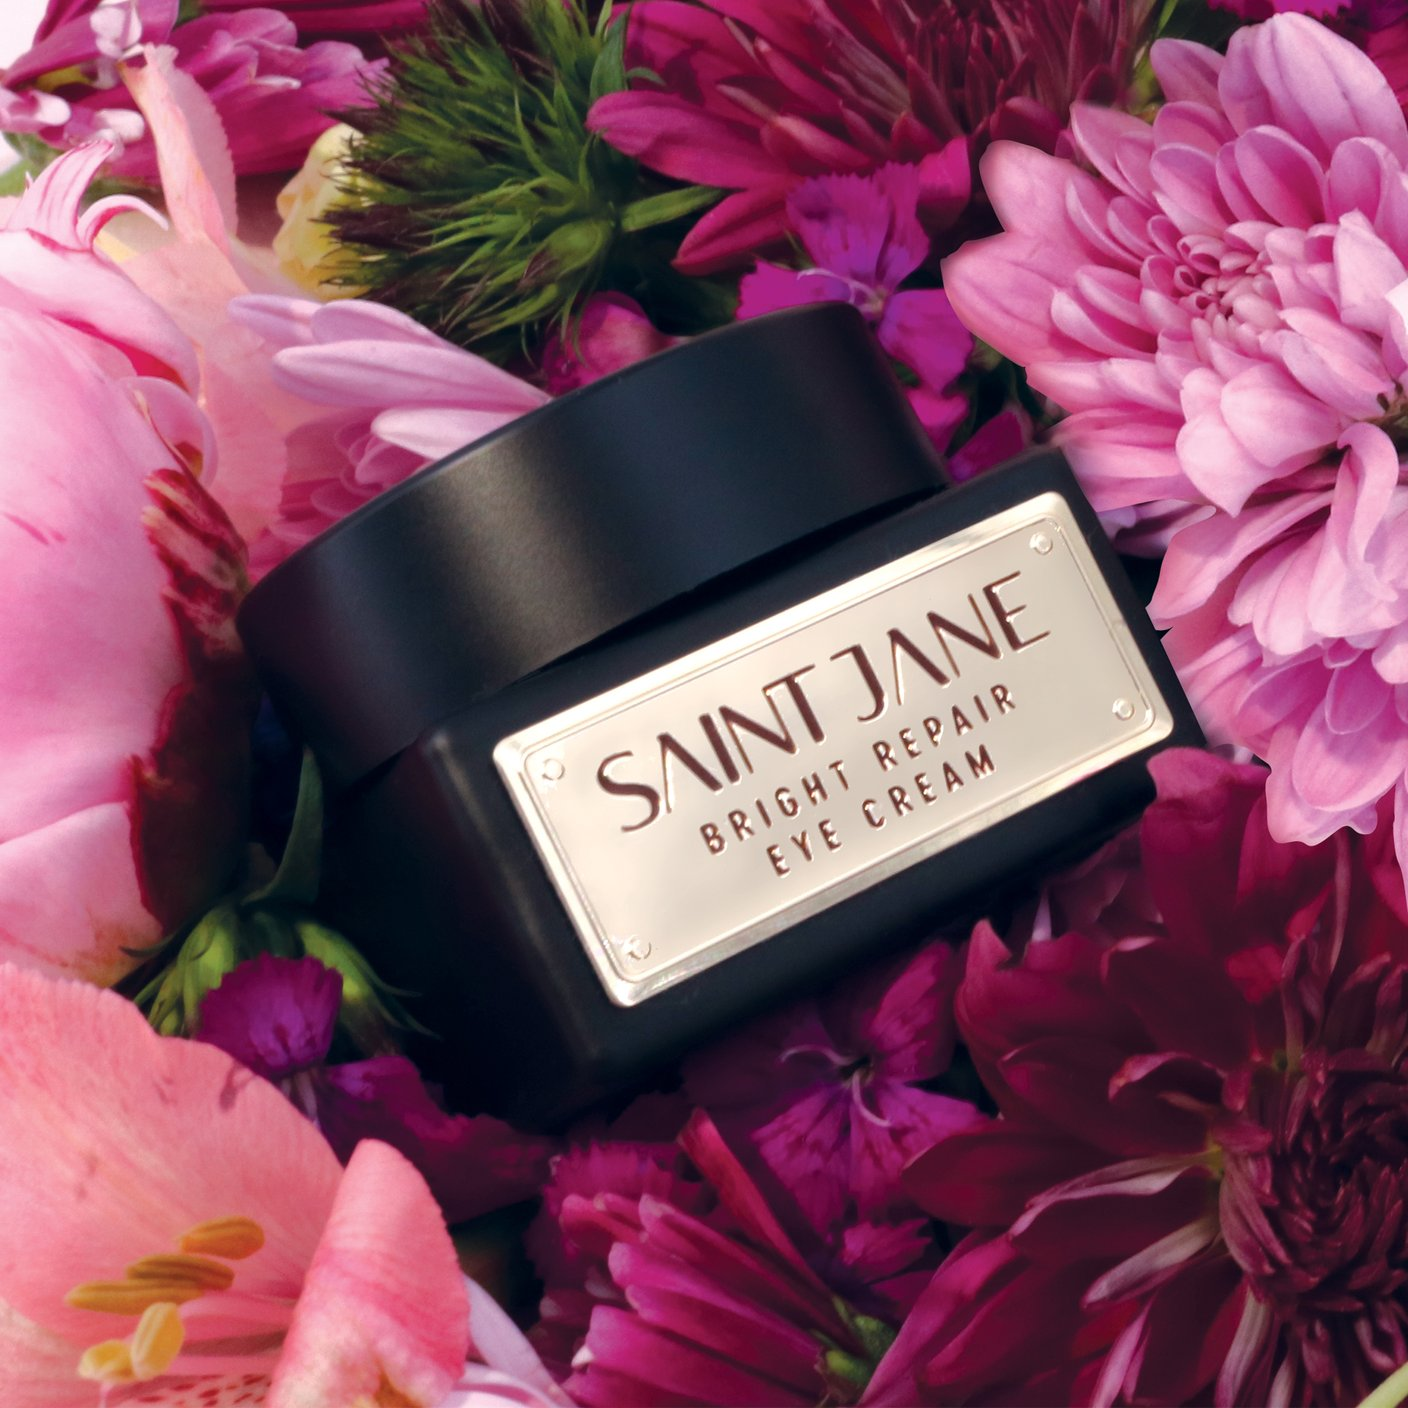 Saint jane eye cream, cbd